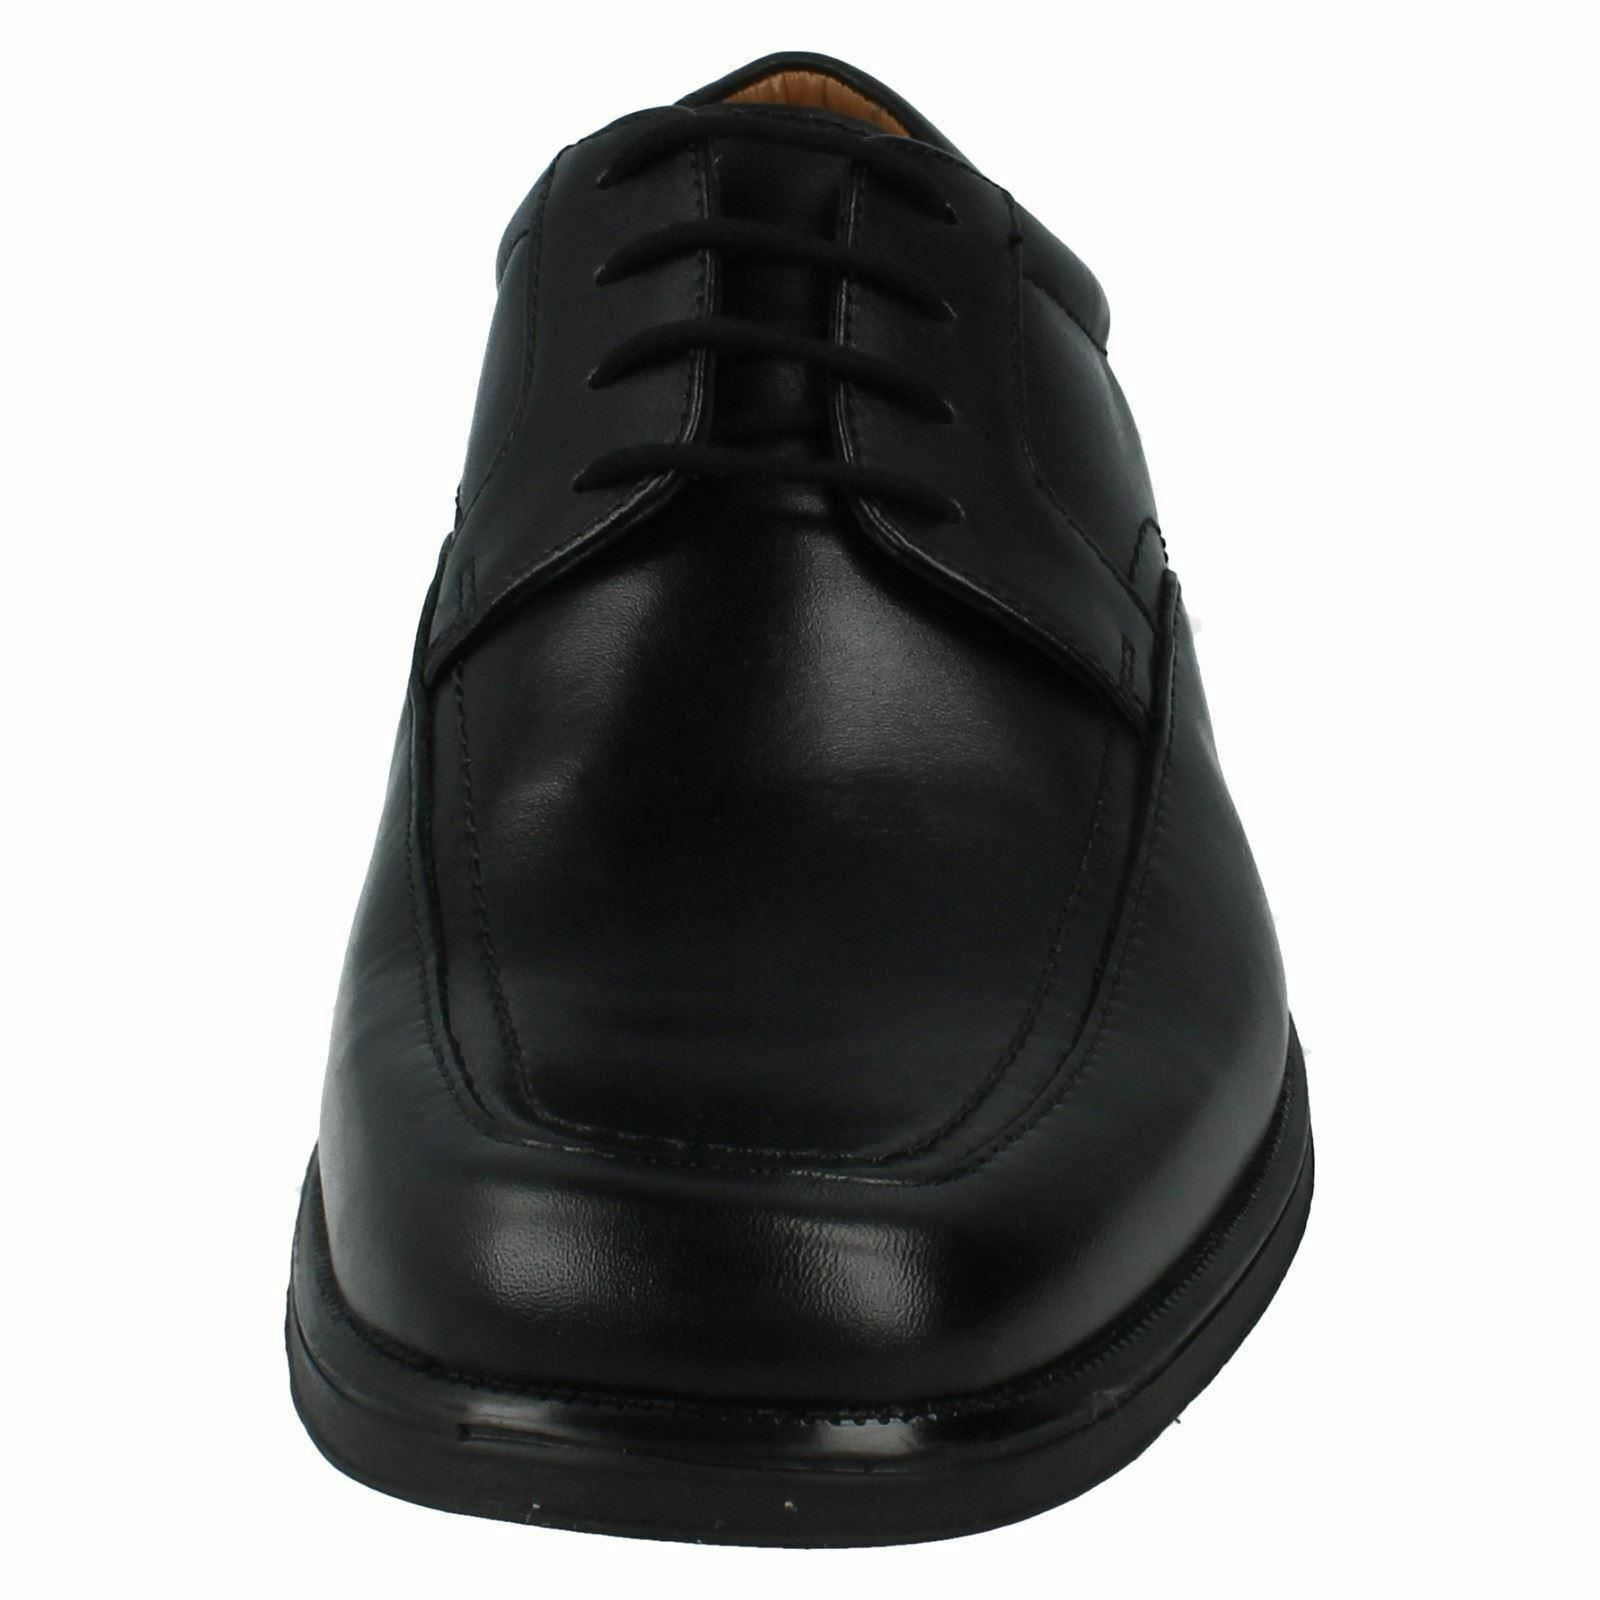 Mens Clarks schwarz Leder Lace Up Huckley Formal Schuhes G Fittting Huckley Up Spring a0c4f1